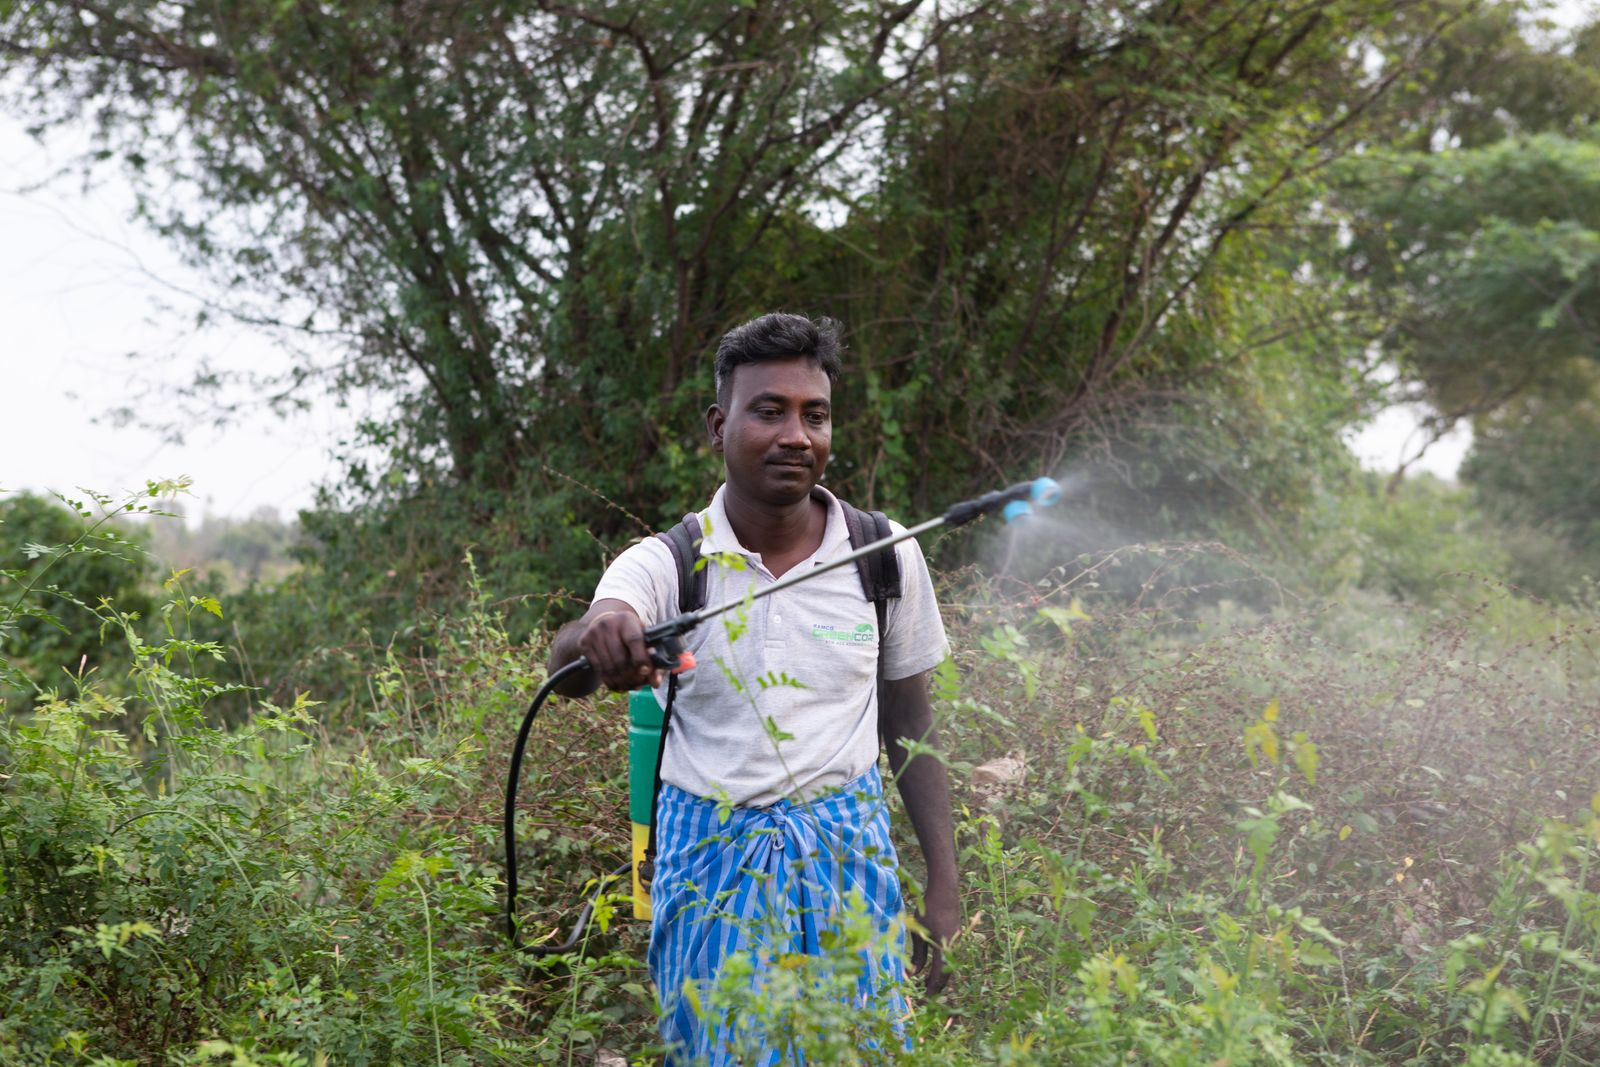 12th Jan 2021, Thalavedu village, Tiruttani Thaluk,Thiruvallur district in Tamil Nadu, India. Sukumar mixes water with the pesticide. Pesticides are used to prevent insects, to make the flowers larger, to flowers bloom etc. He spray toxic chemicals wearing only a traditional wraparound (lungi) or and cover their mouth and nose with a piece of cloth—basically ineffectual against pesticide fumes. Photographer: Samyukta Lakshmi.